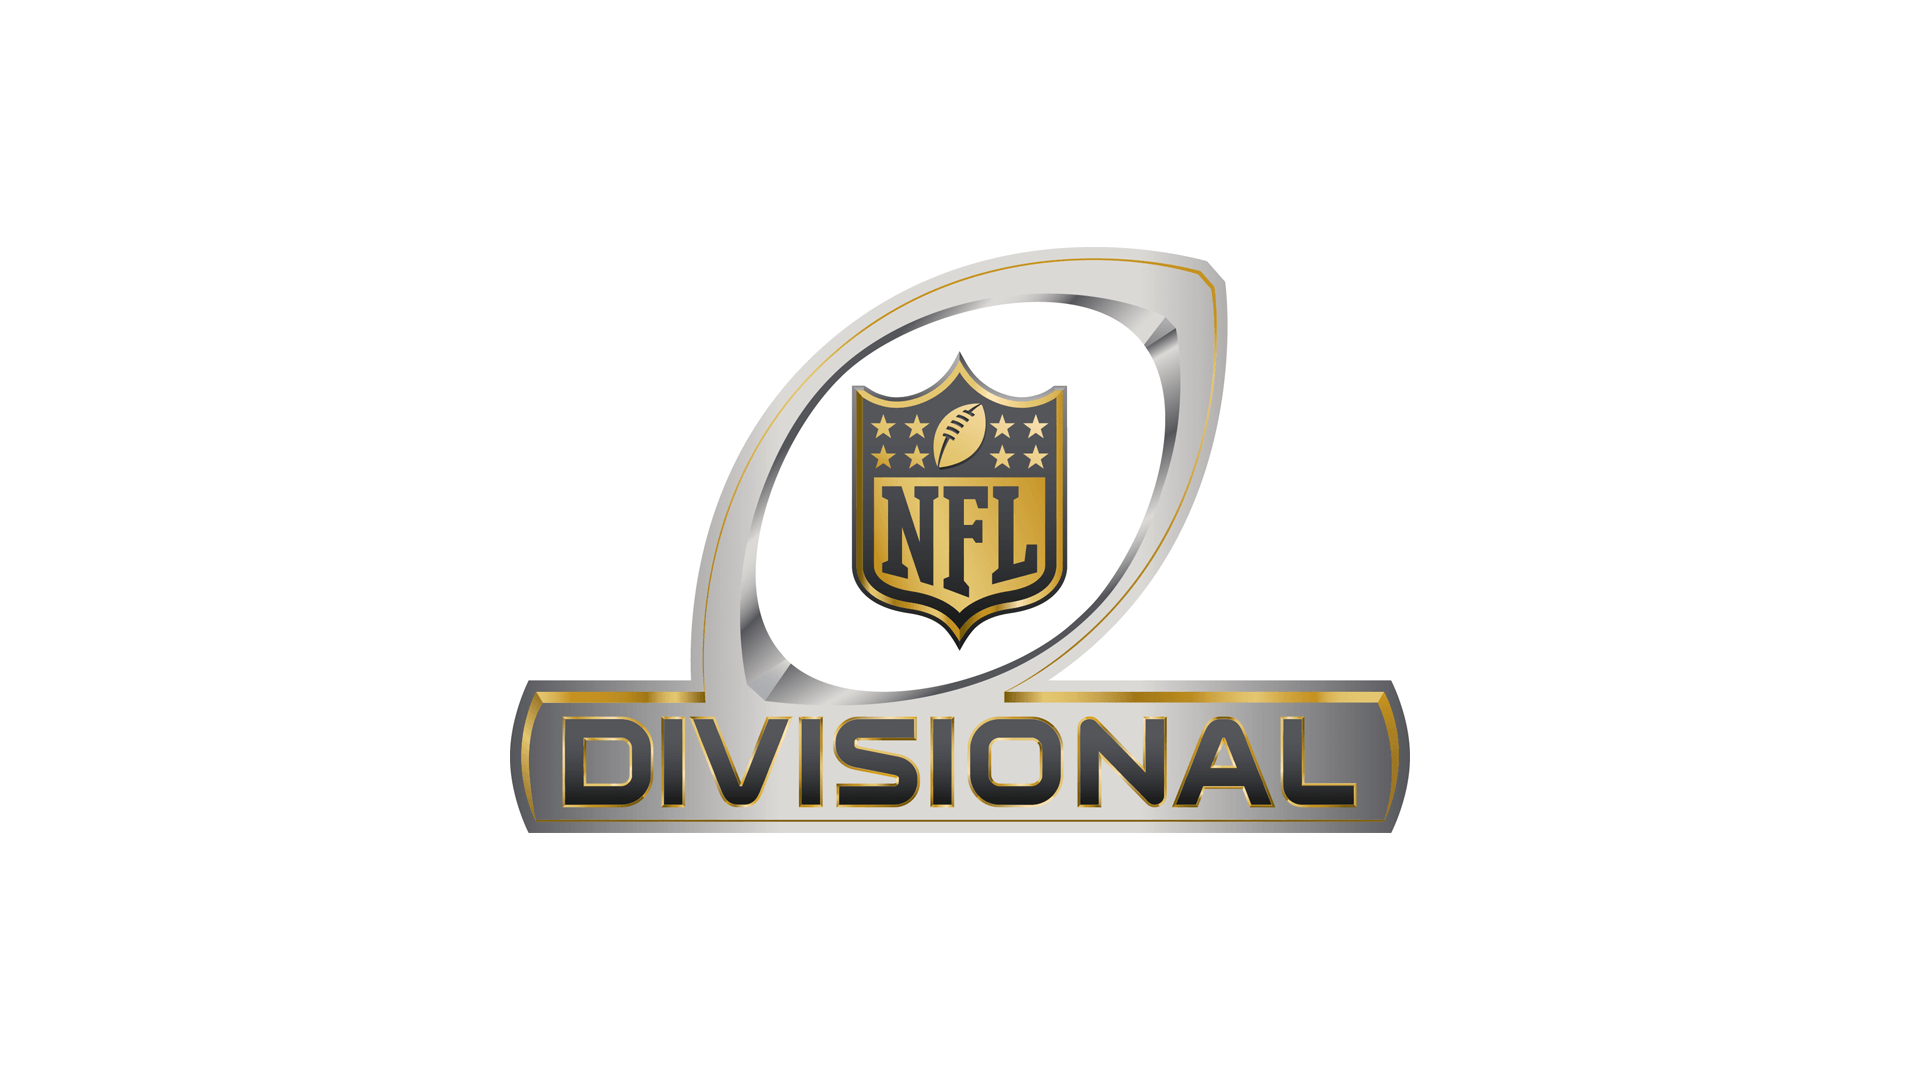 Nfl Divisional Round